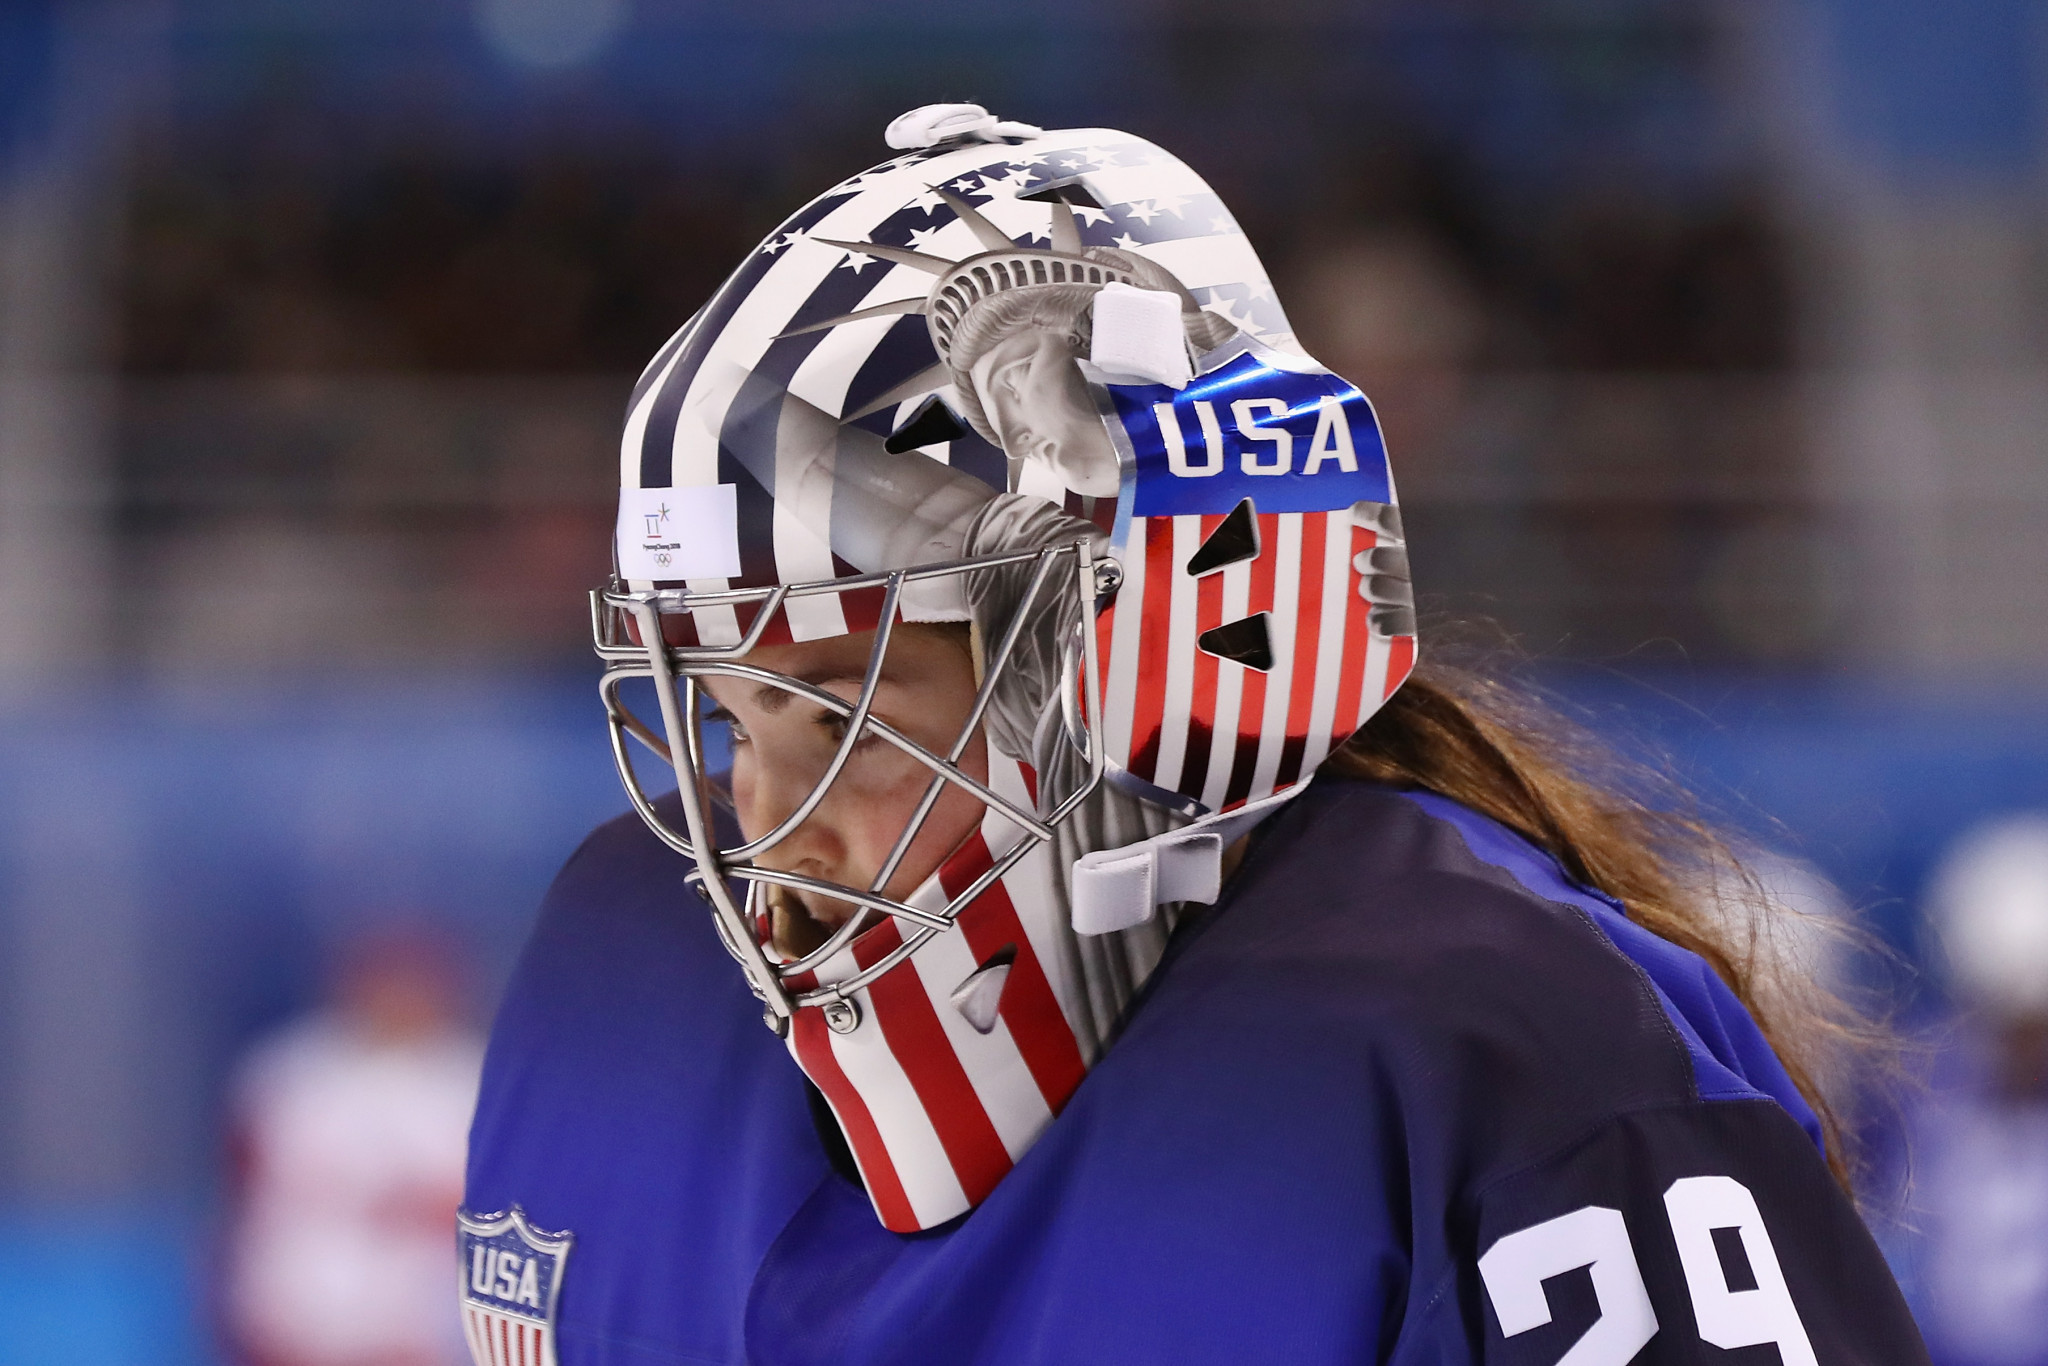 US goaltender allowed to wear Statue of Liberty on helmet after IOC claim misunderstanding over its removal